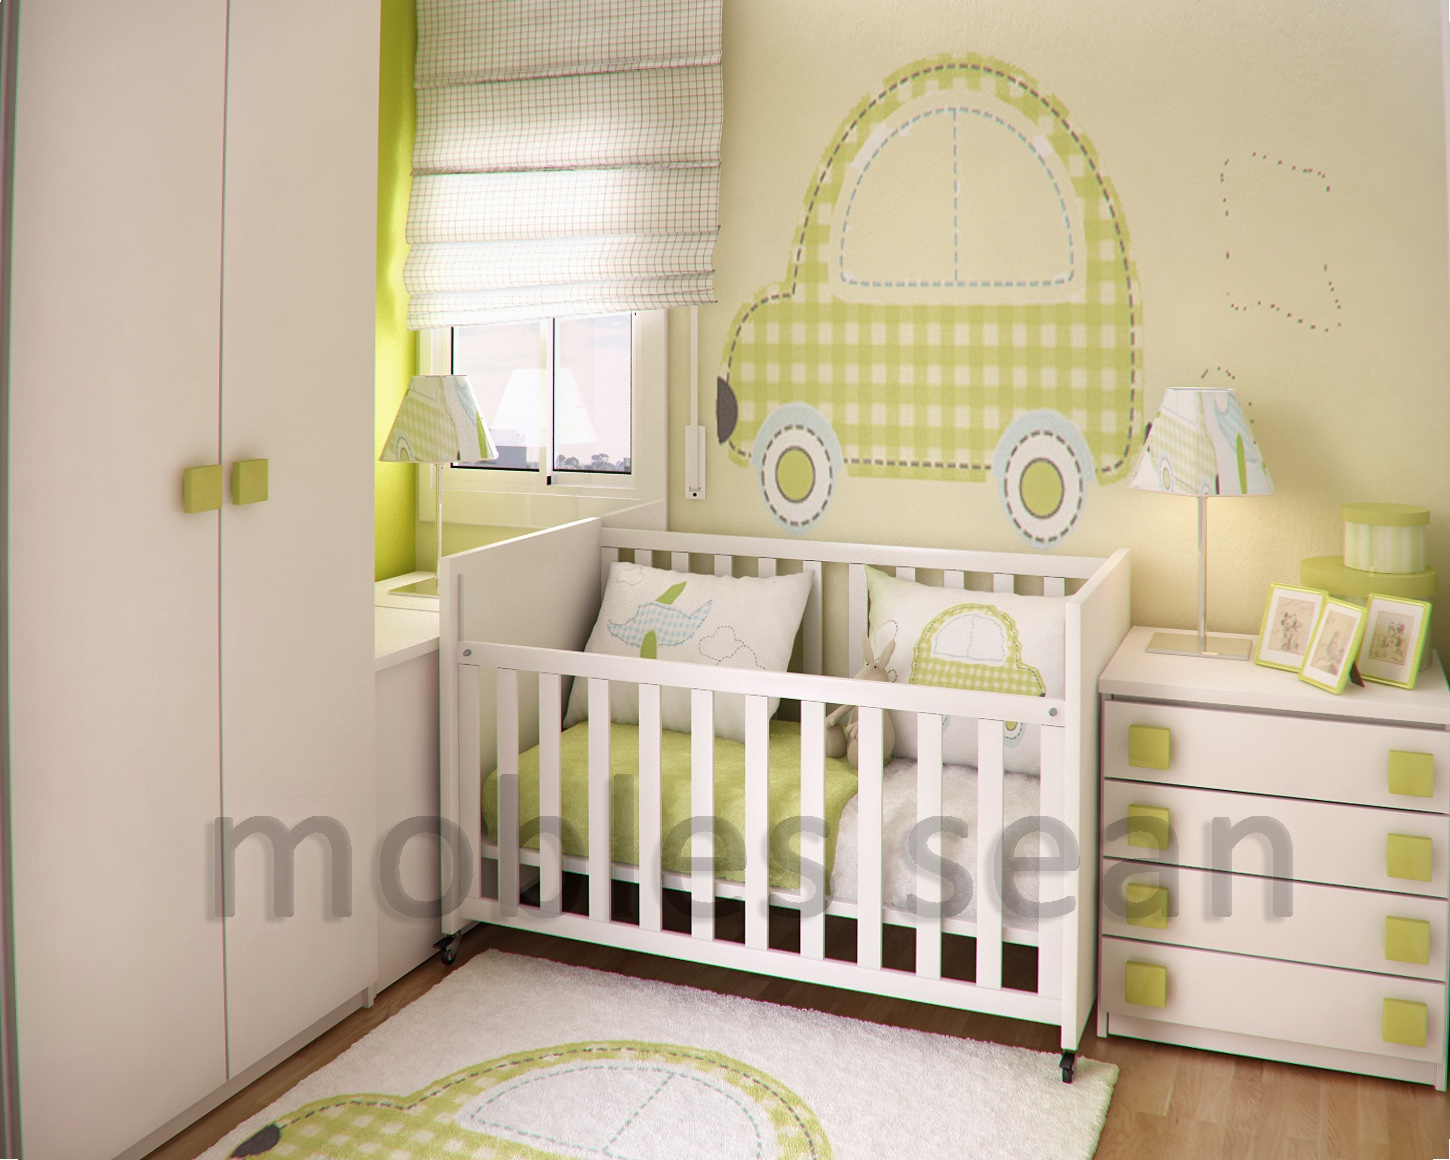 Remarkable Baby Nursery Ideas for Small Rooms 1450 x 1160   468 kB   jpeg. Babies Bedrooms Designs   Interior Decorating and Home Design Ideas